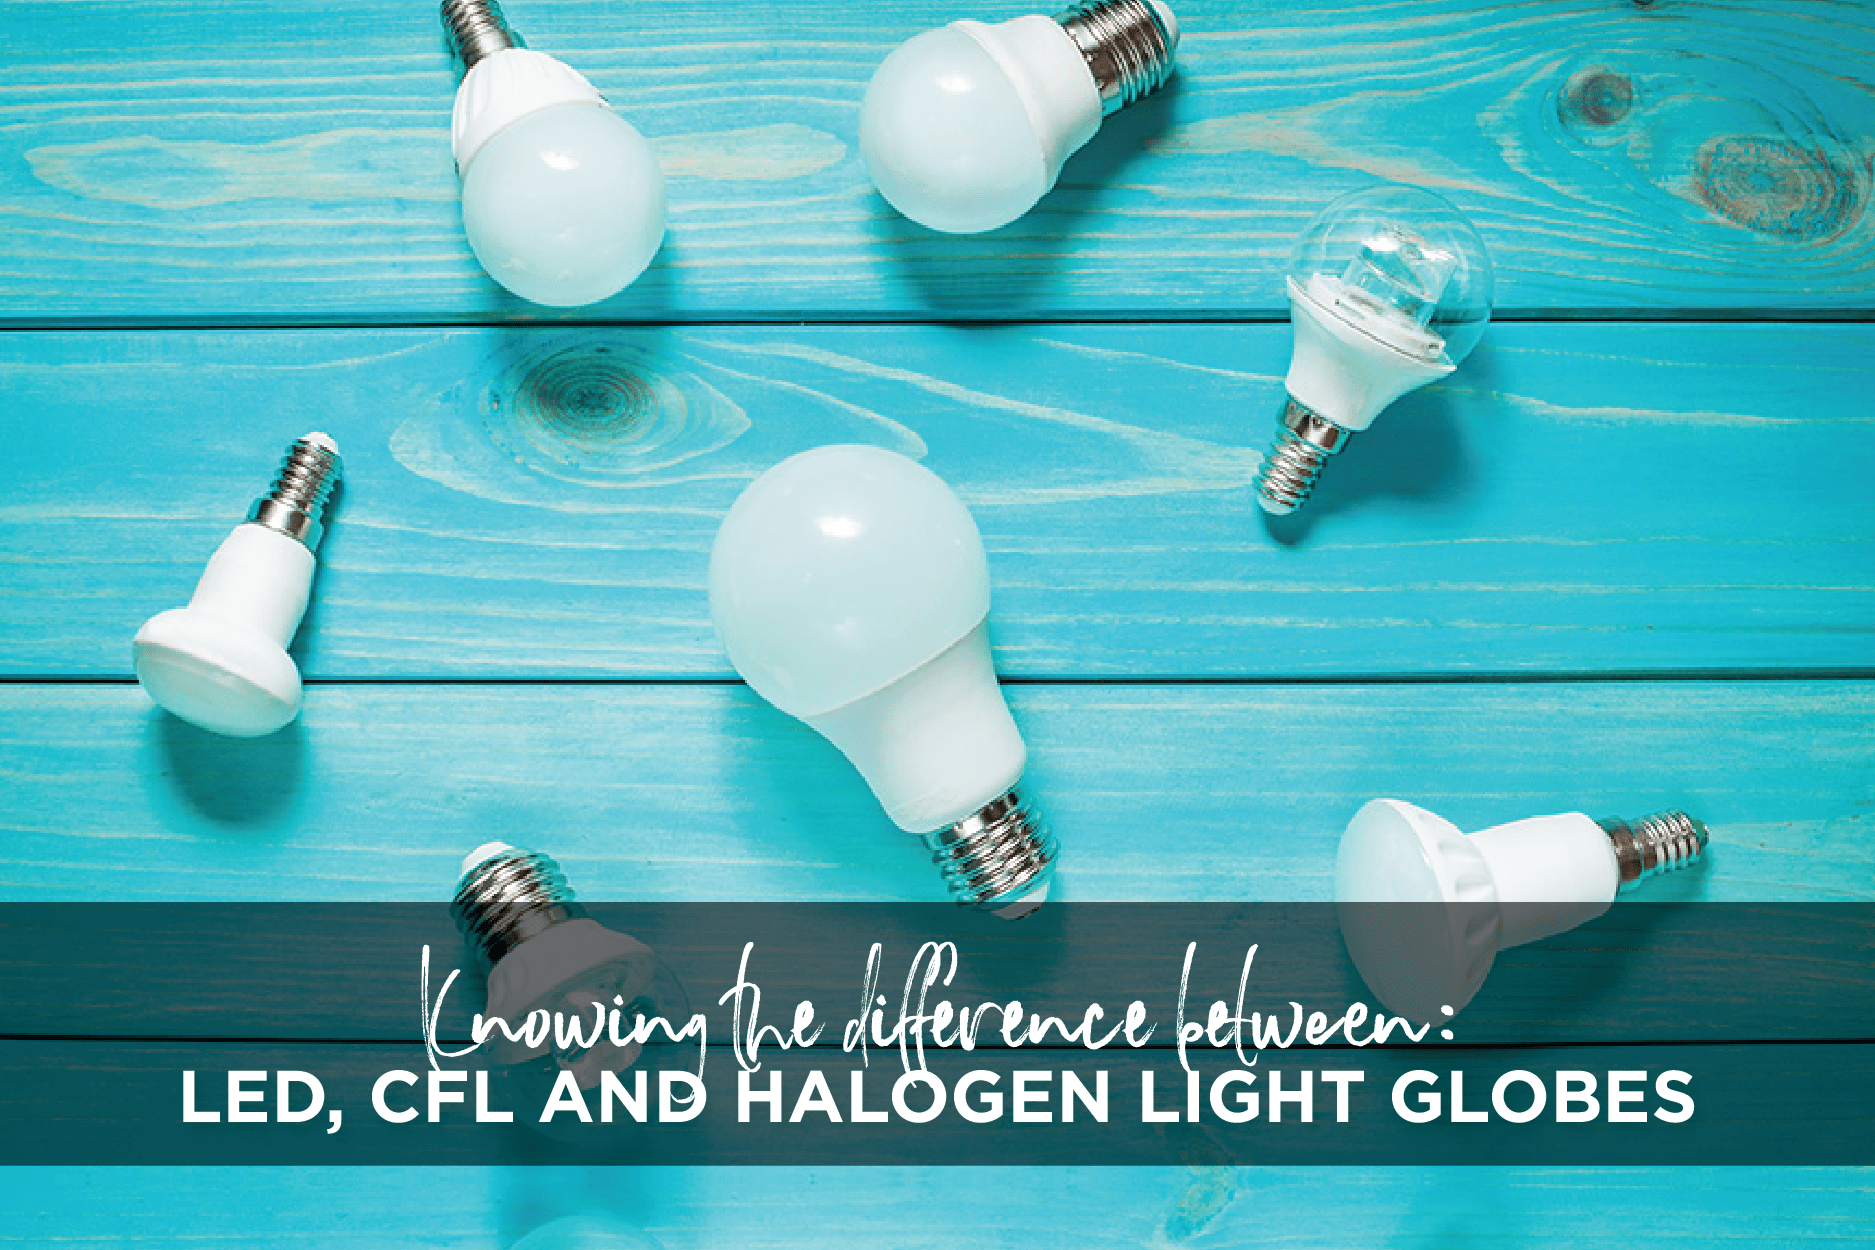 Halogen Oder Led Light Globes Know The Difference Between Led Cfl And Halogen